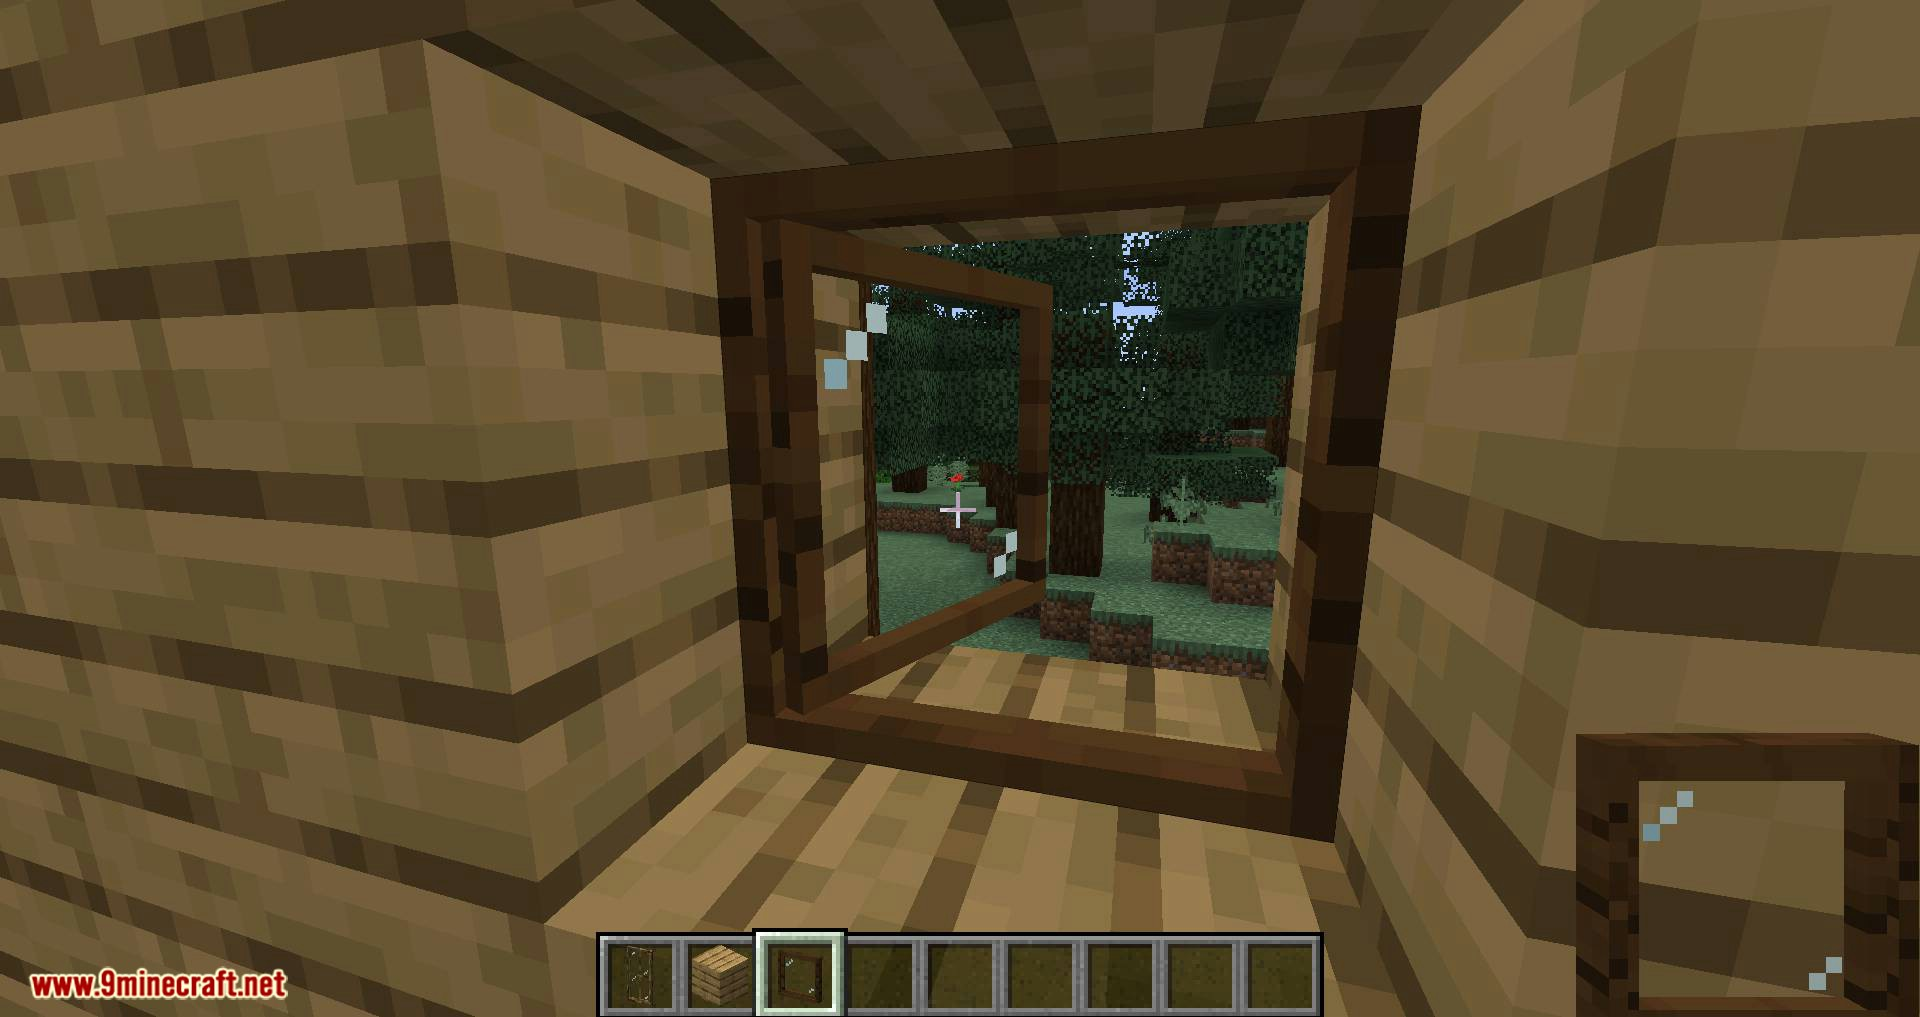 Macaw_s Windows mod for minecraft 08